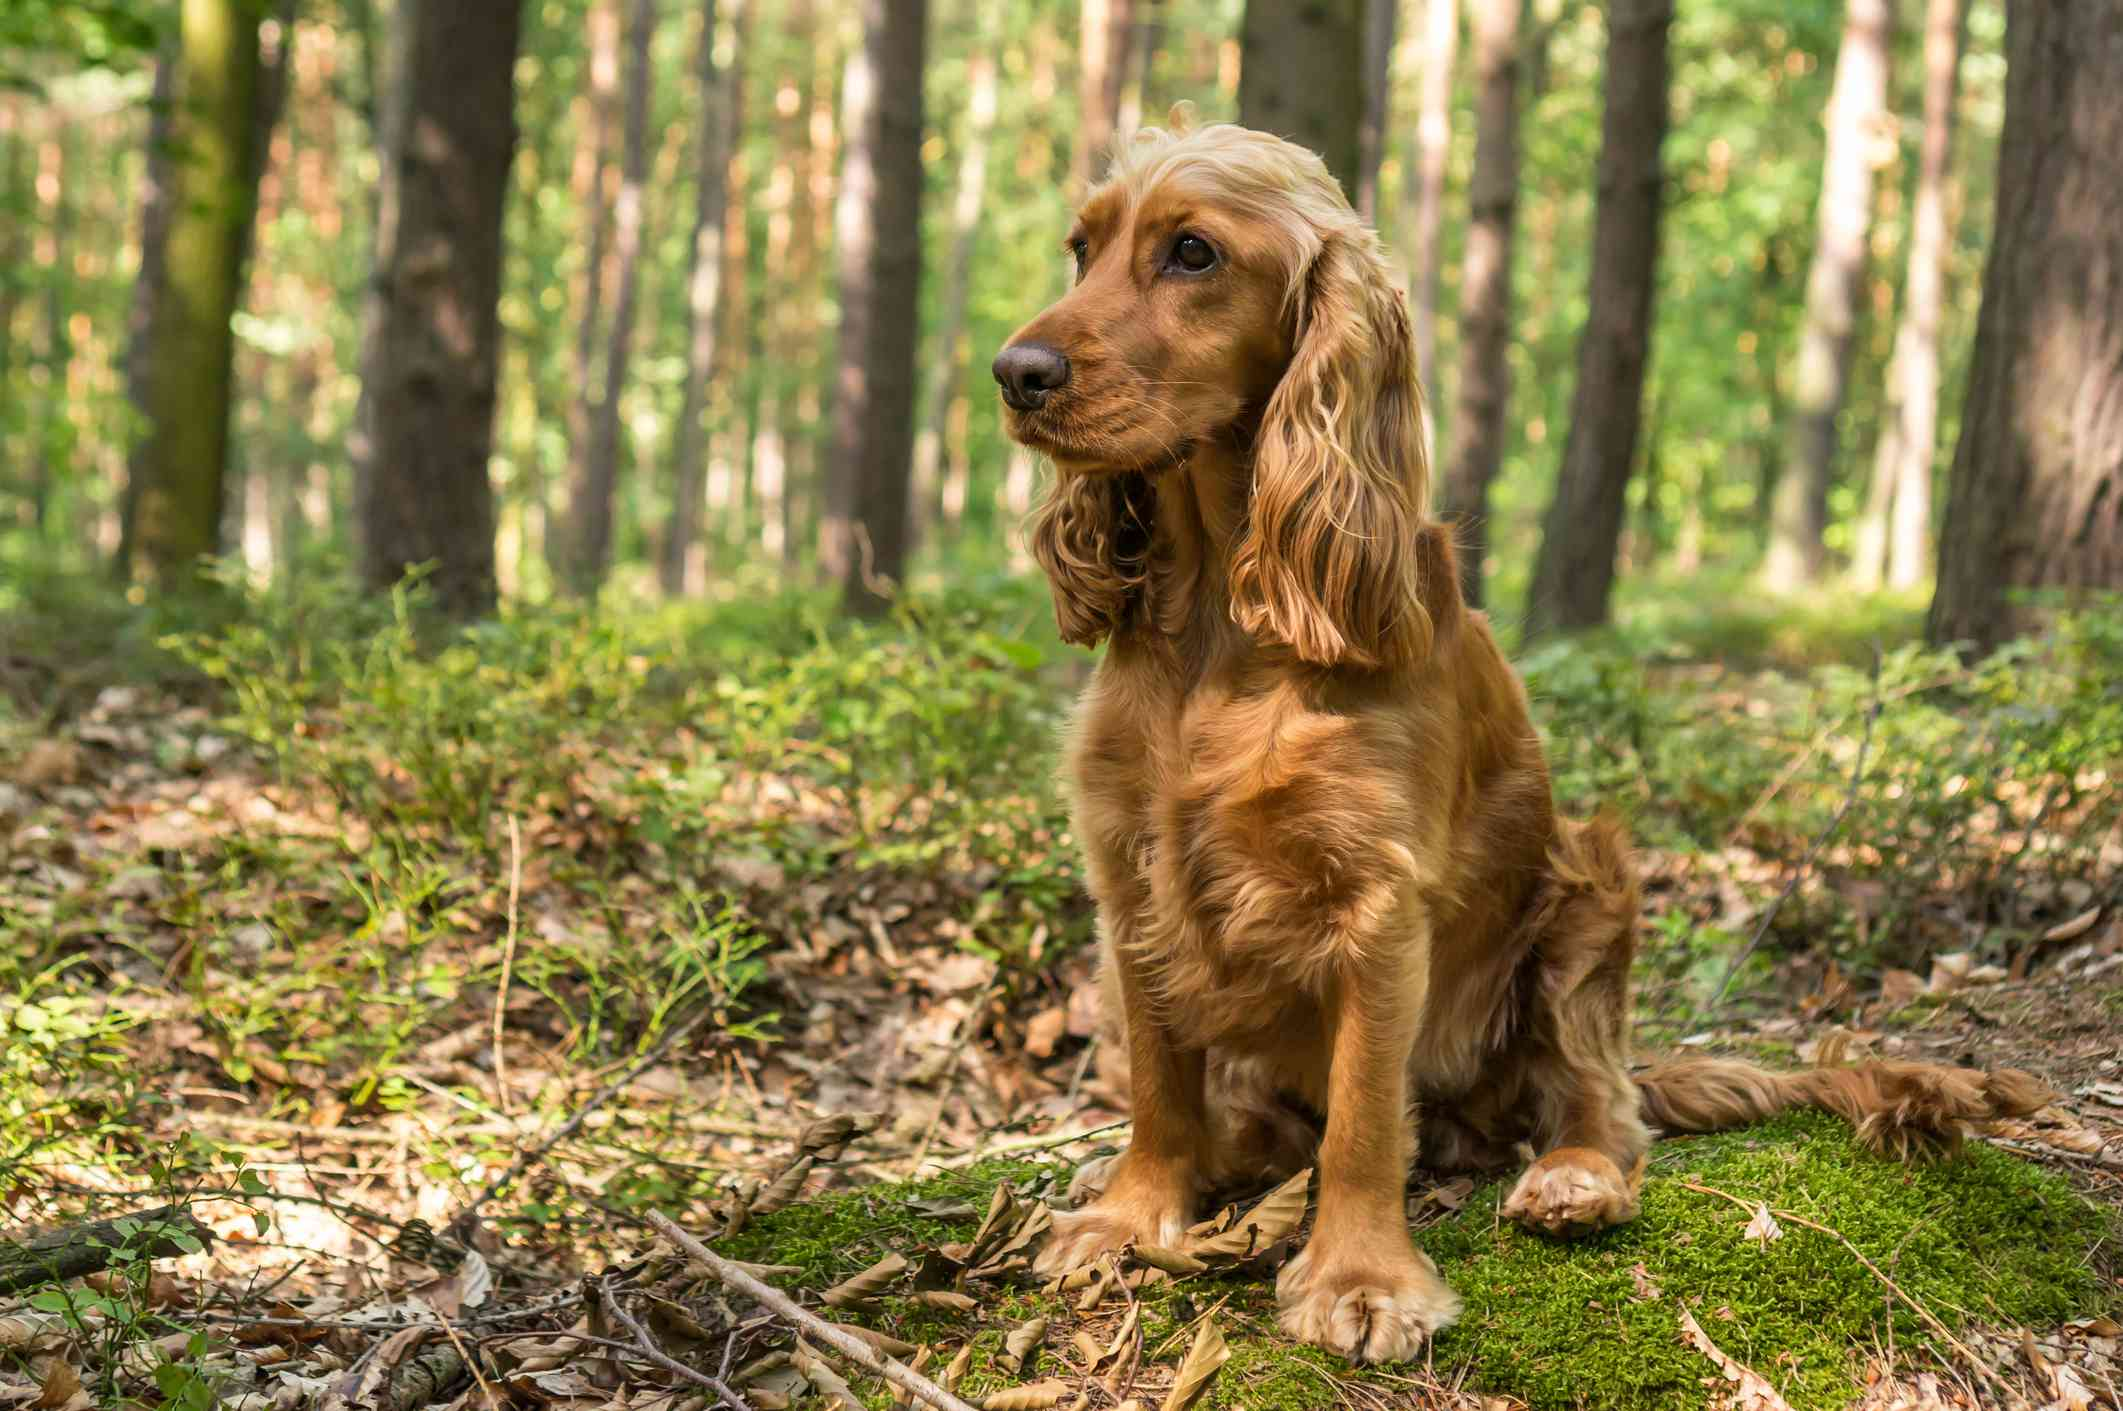 English Cocker Spaniel sitting in a forest